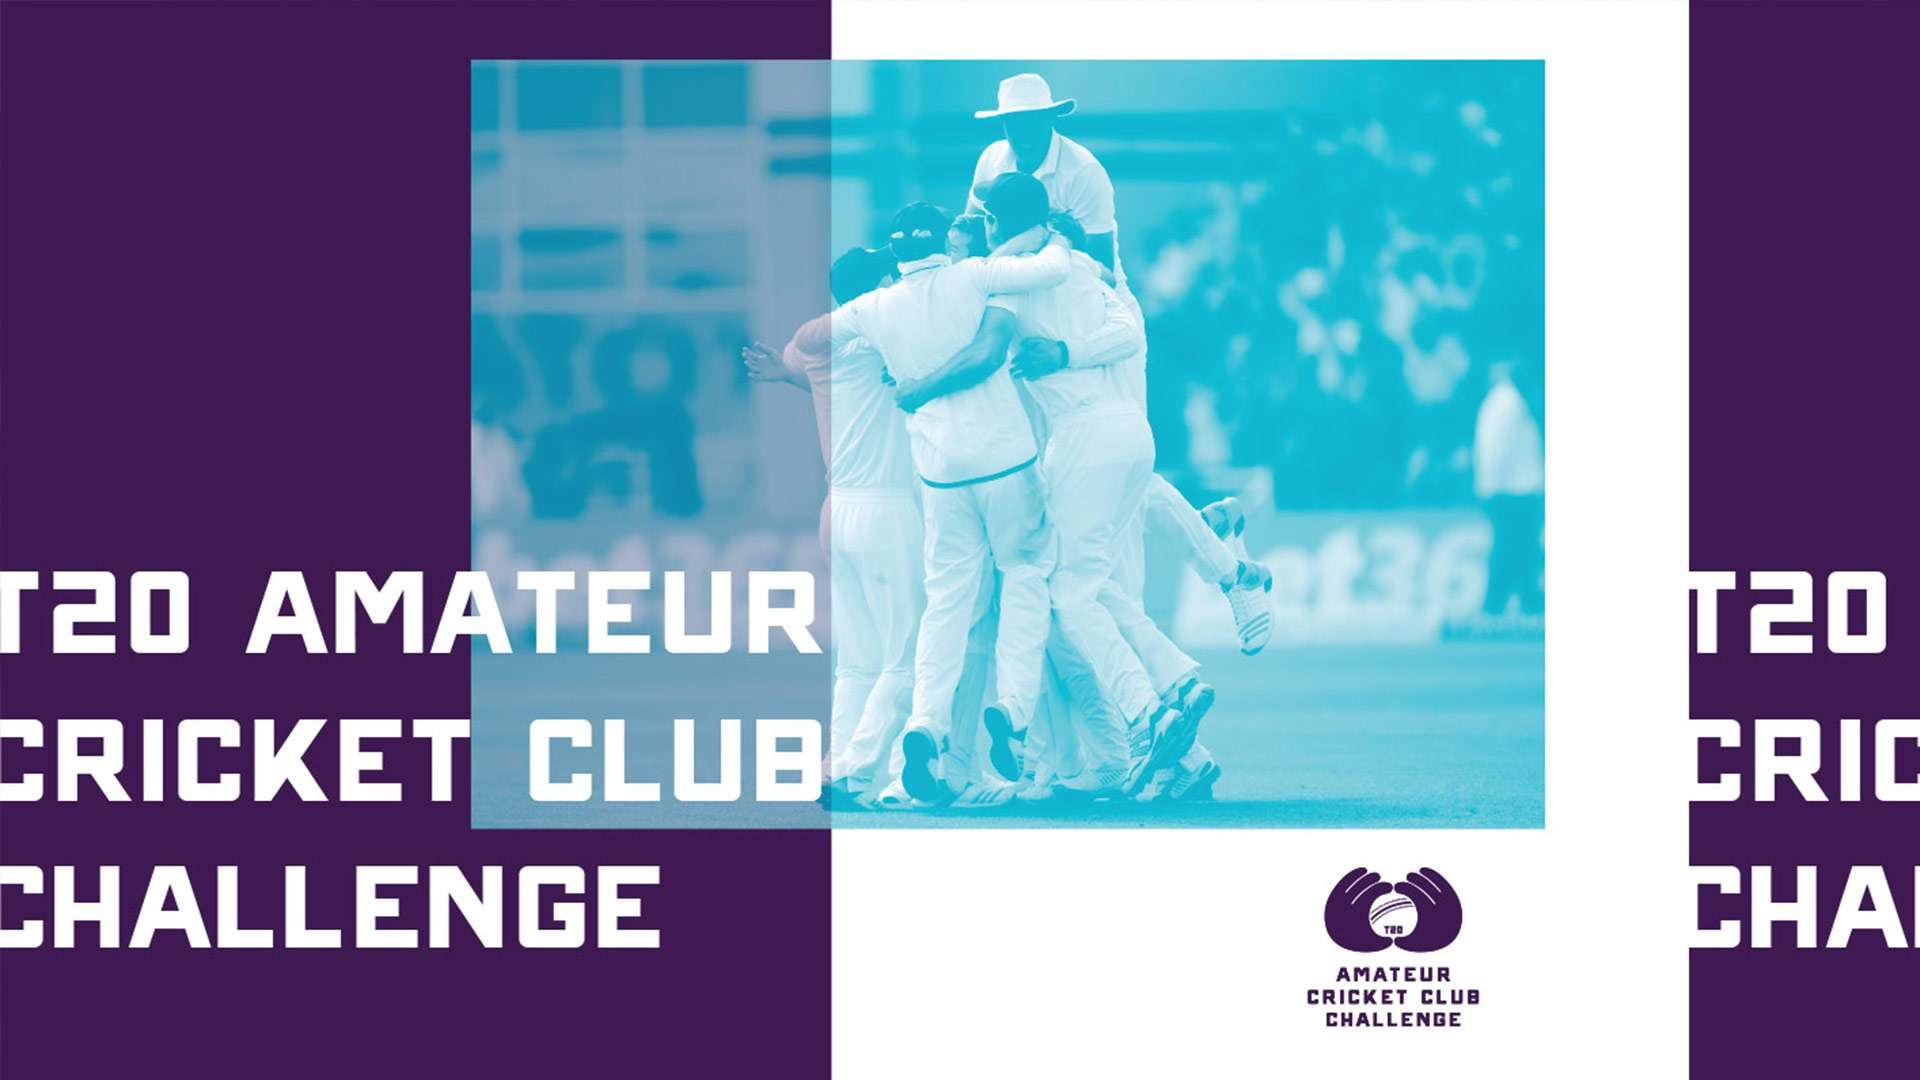 T20 Amateur Cricket Club Challenge New Visual Identity & Website Design by Studio Equator